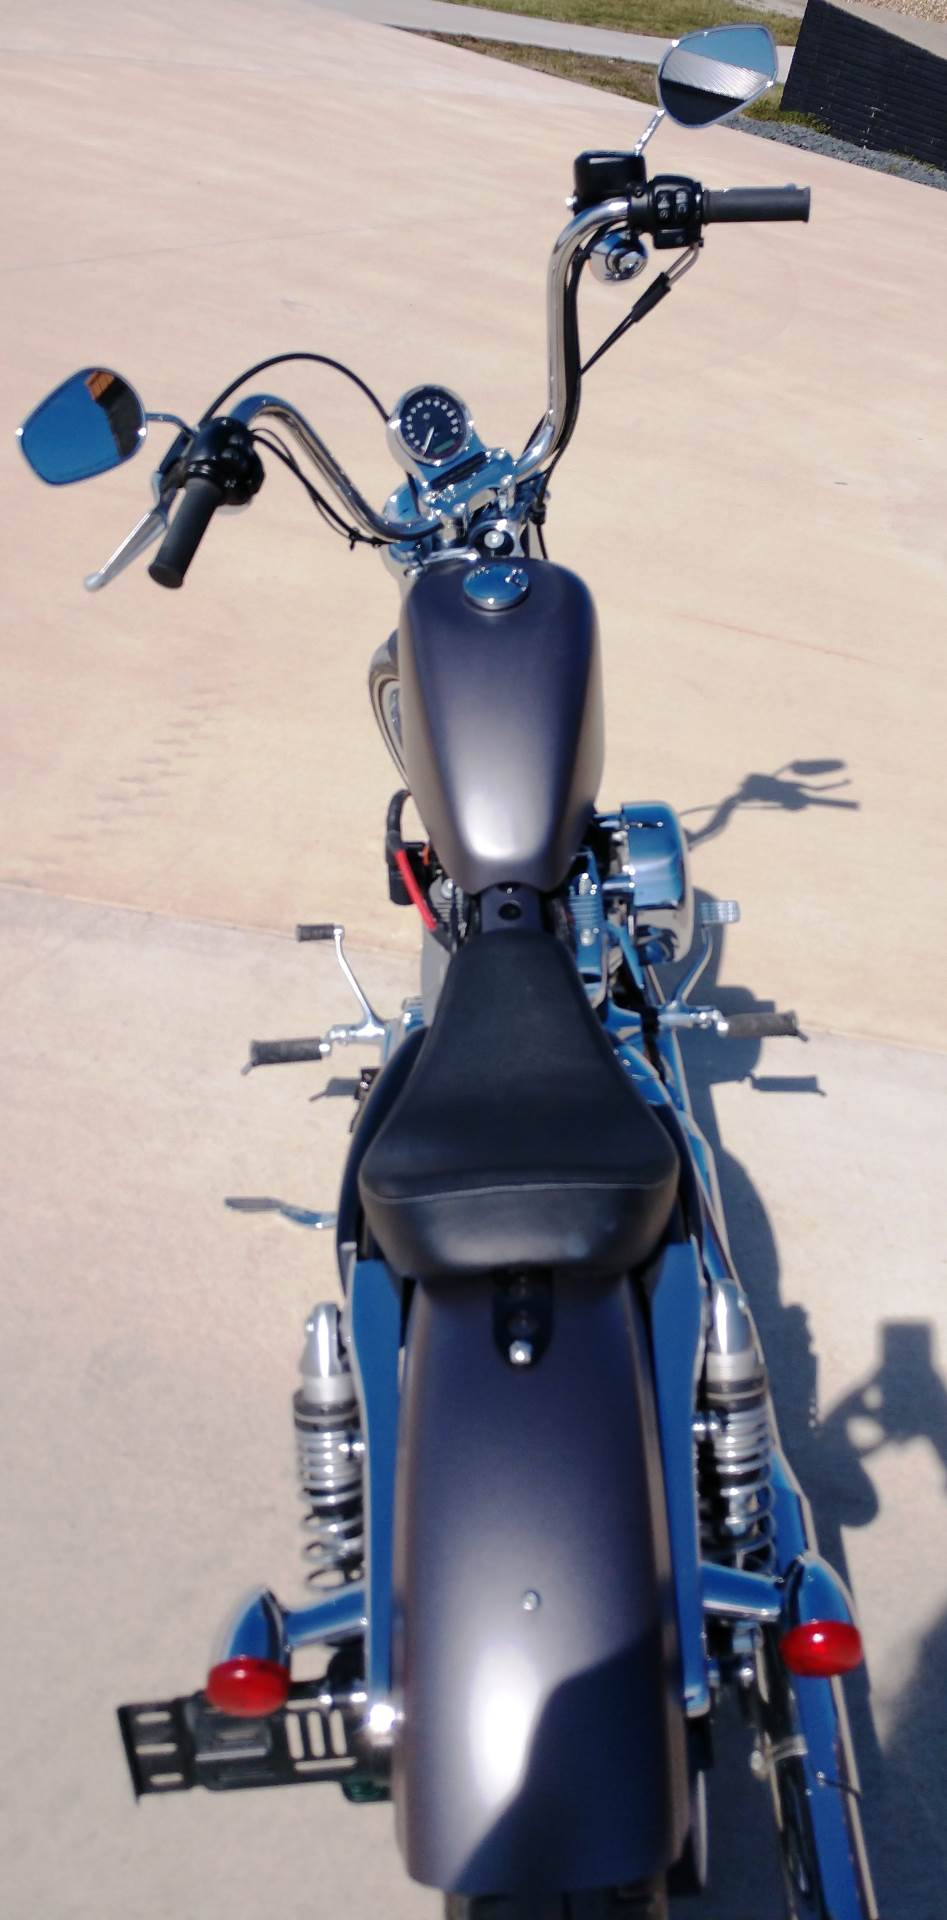 2016 Harley-Davidson XL 1200 V 72 in Ottumwa, Iowa - Photo 11